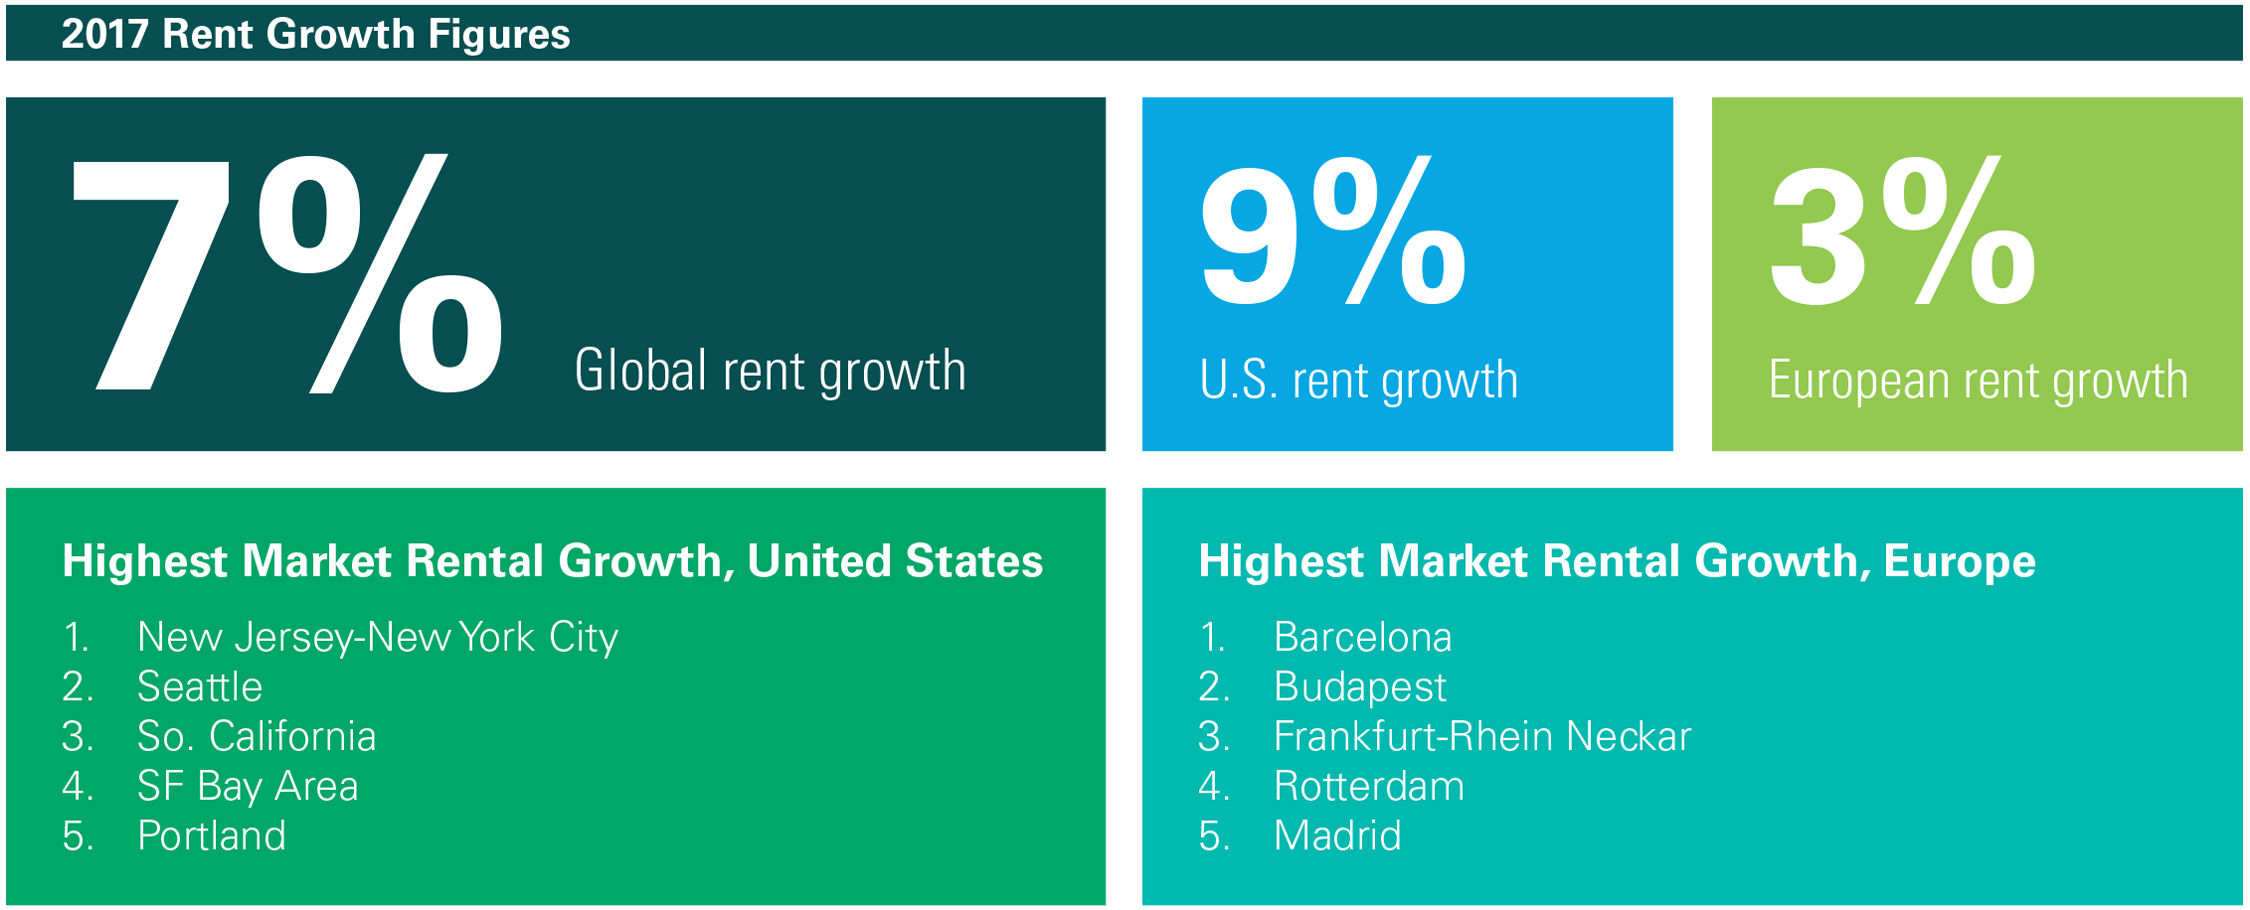 2017 Rent Growth Figures